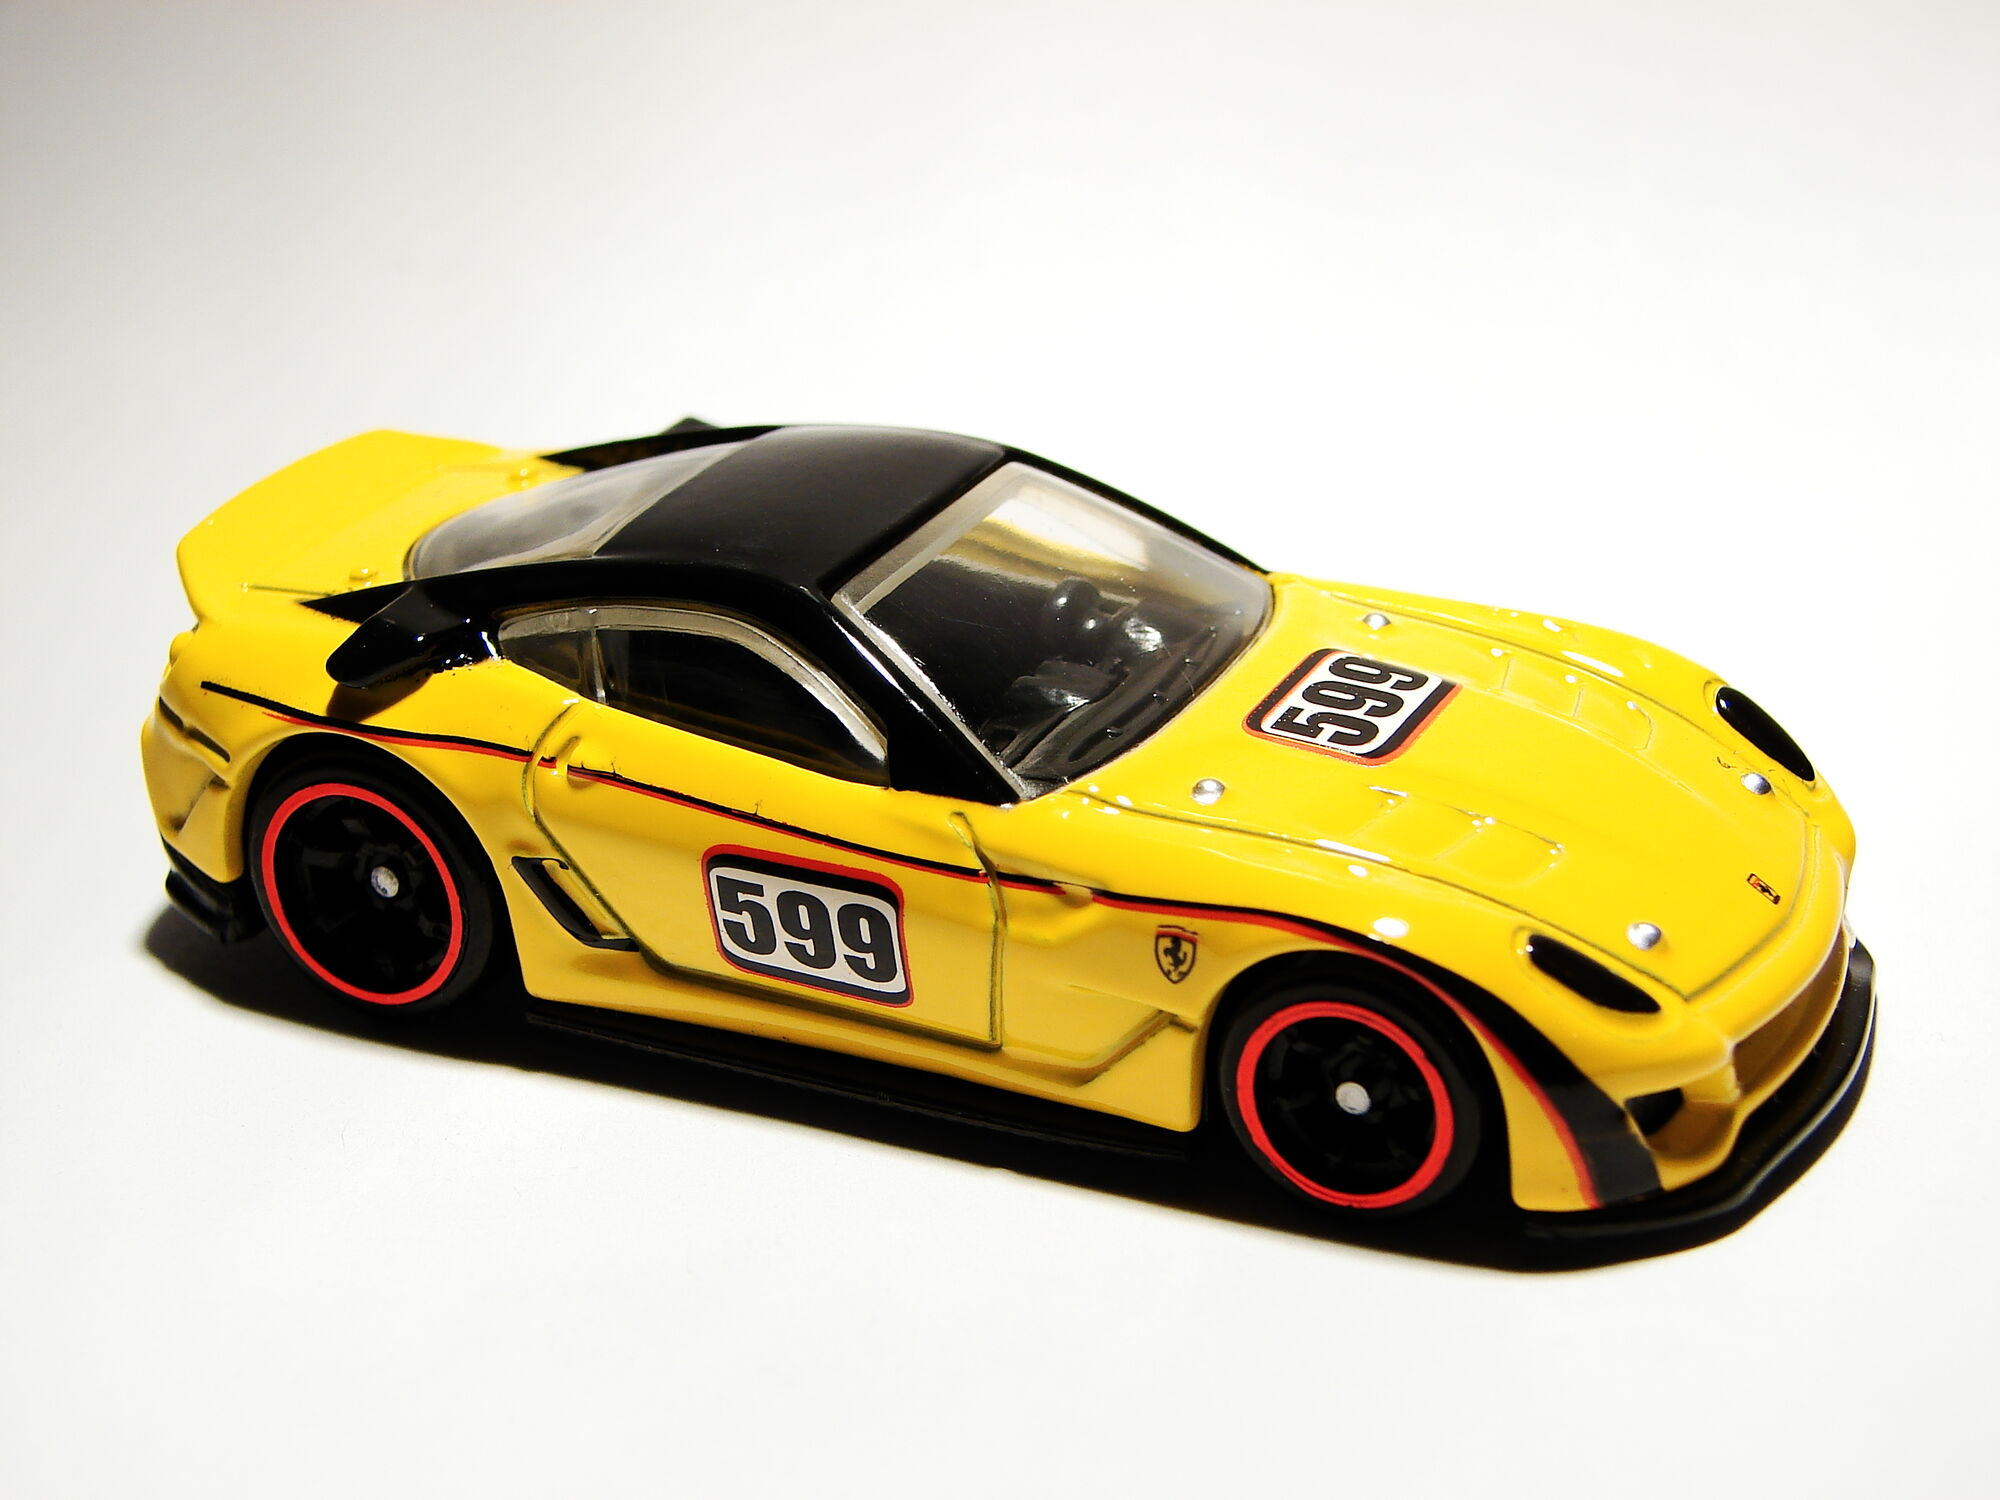 2000?cb=20140526003836 Mesmerizing Hot Wheels Speed Machines Lamborghini Countach Cars Trend